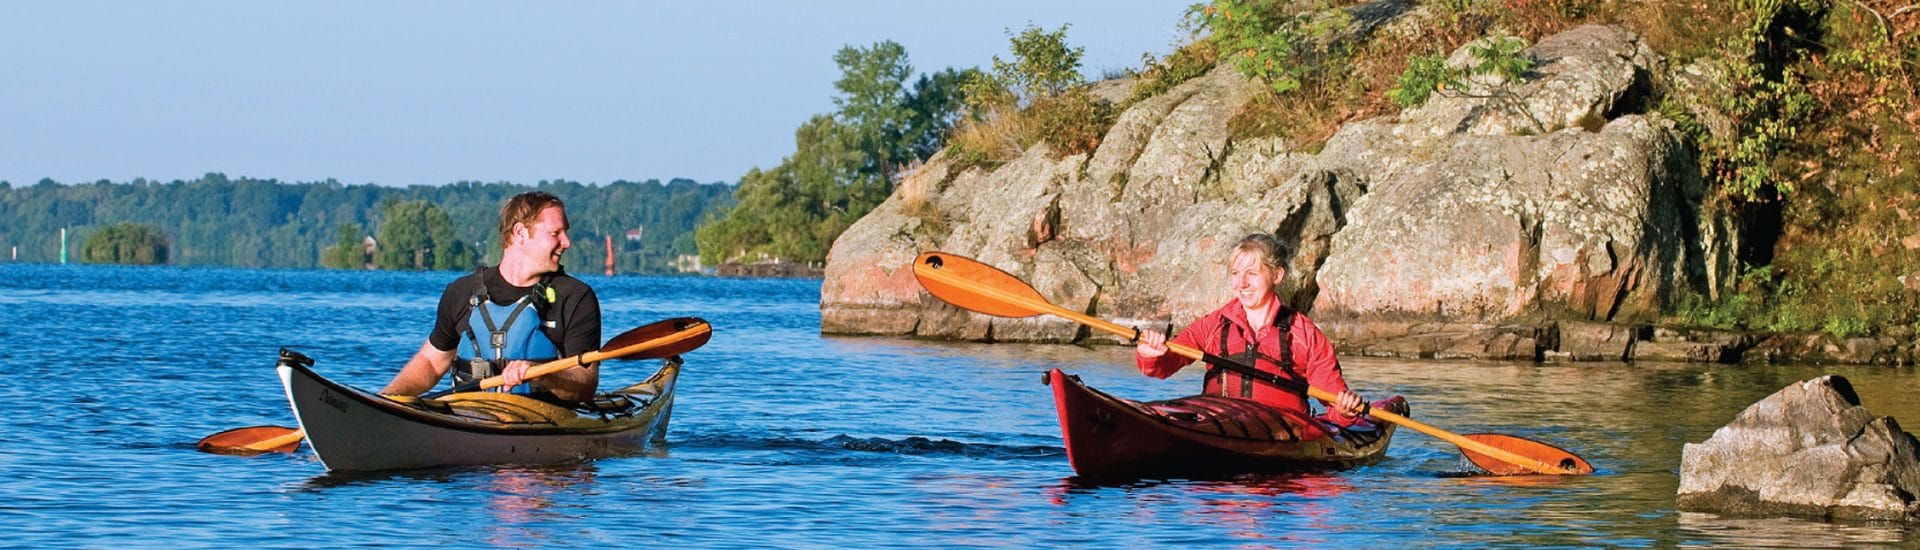 1000 Islands Kayaking